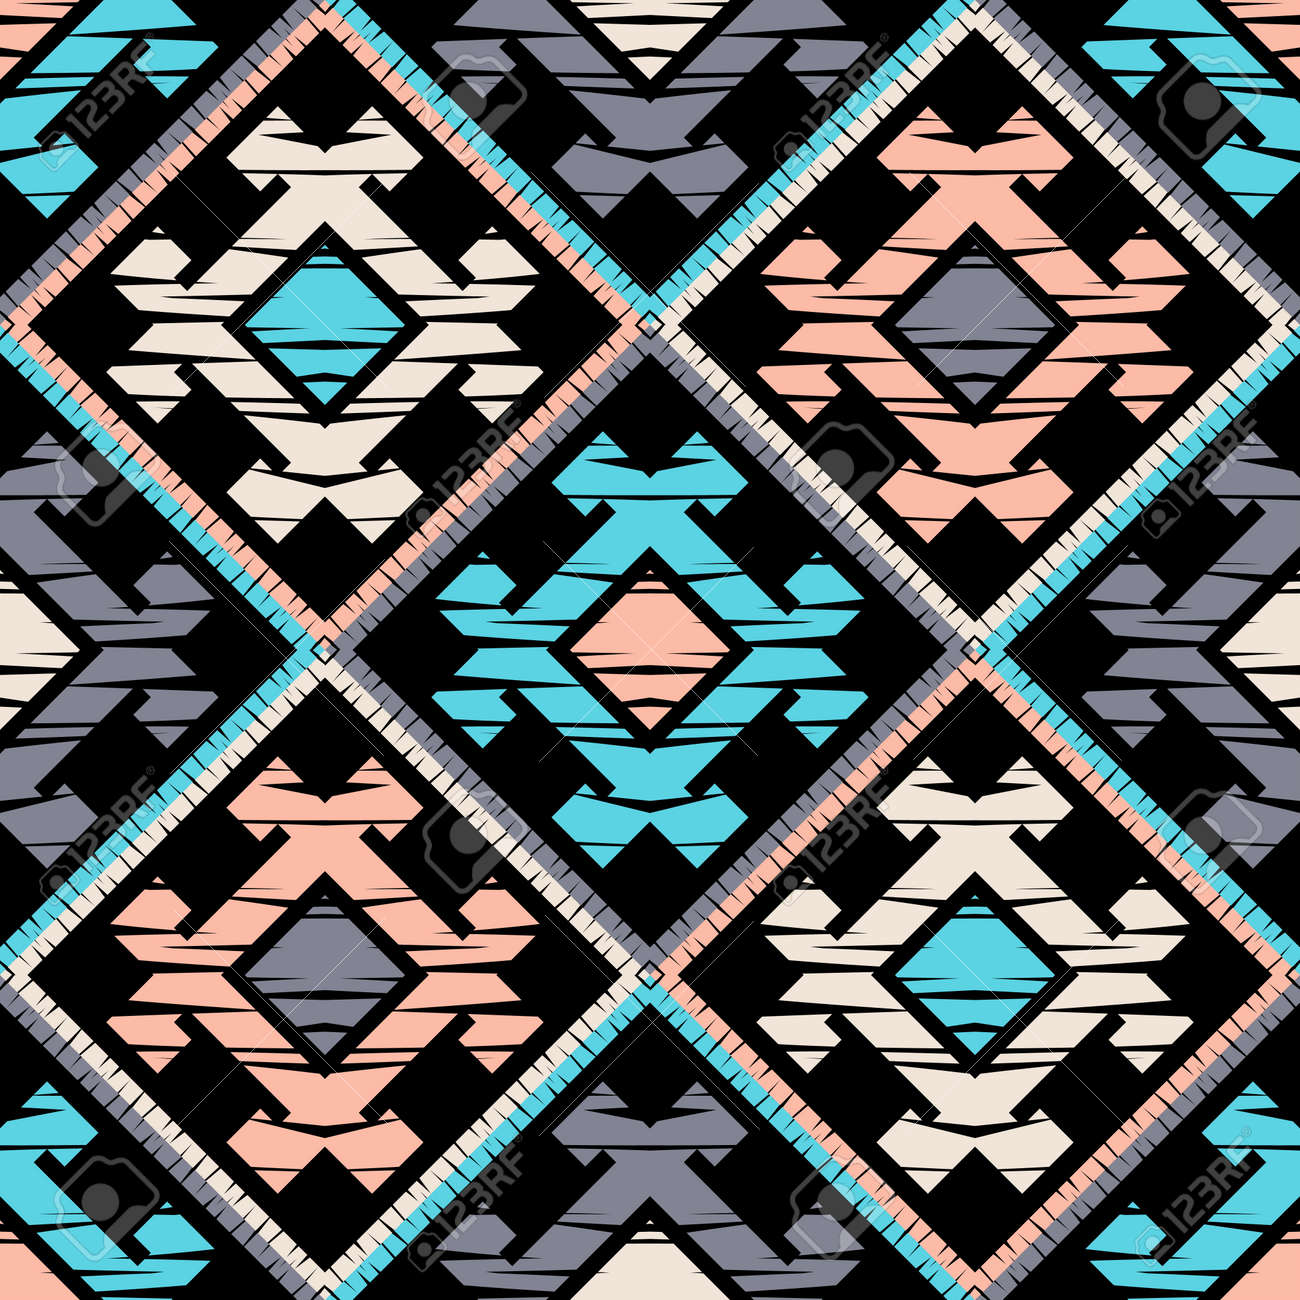 Ethnic boho seamless pattern. Lace. Embroidery on fabric. Patchwork texture. Weaving. Traditional ornament. Tribal pattern. Folk motif. Can be used for wallpaper, textile, wrapping, web. - 139543978